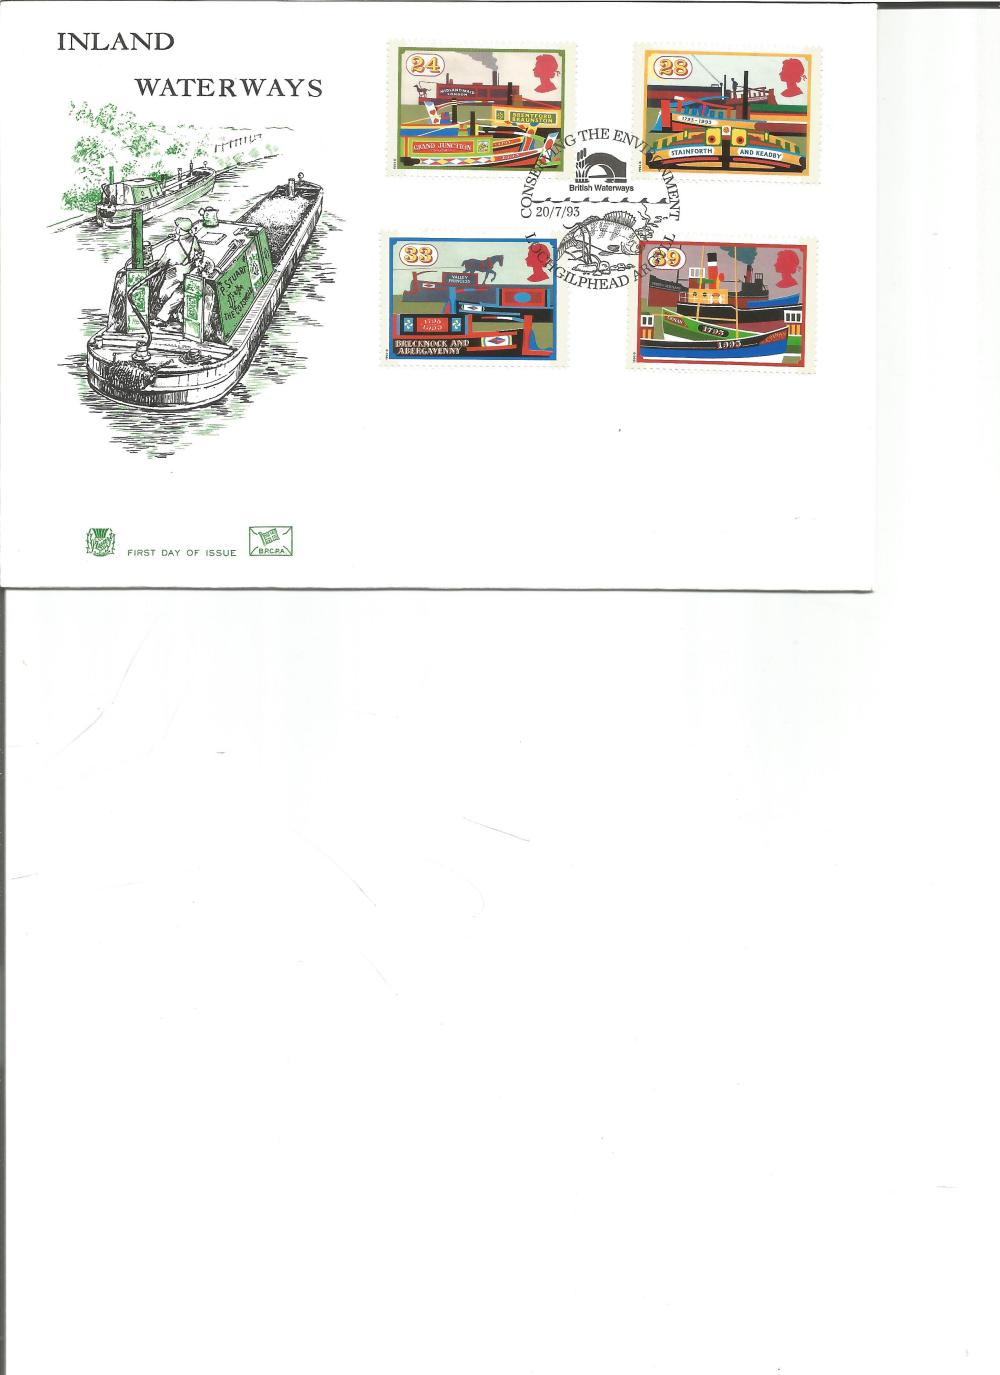 FDC Inland Waterways c/w set of four commemorative stamps PM Conserving the Environment, Loch